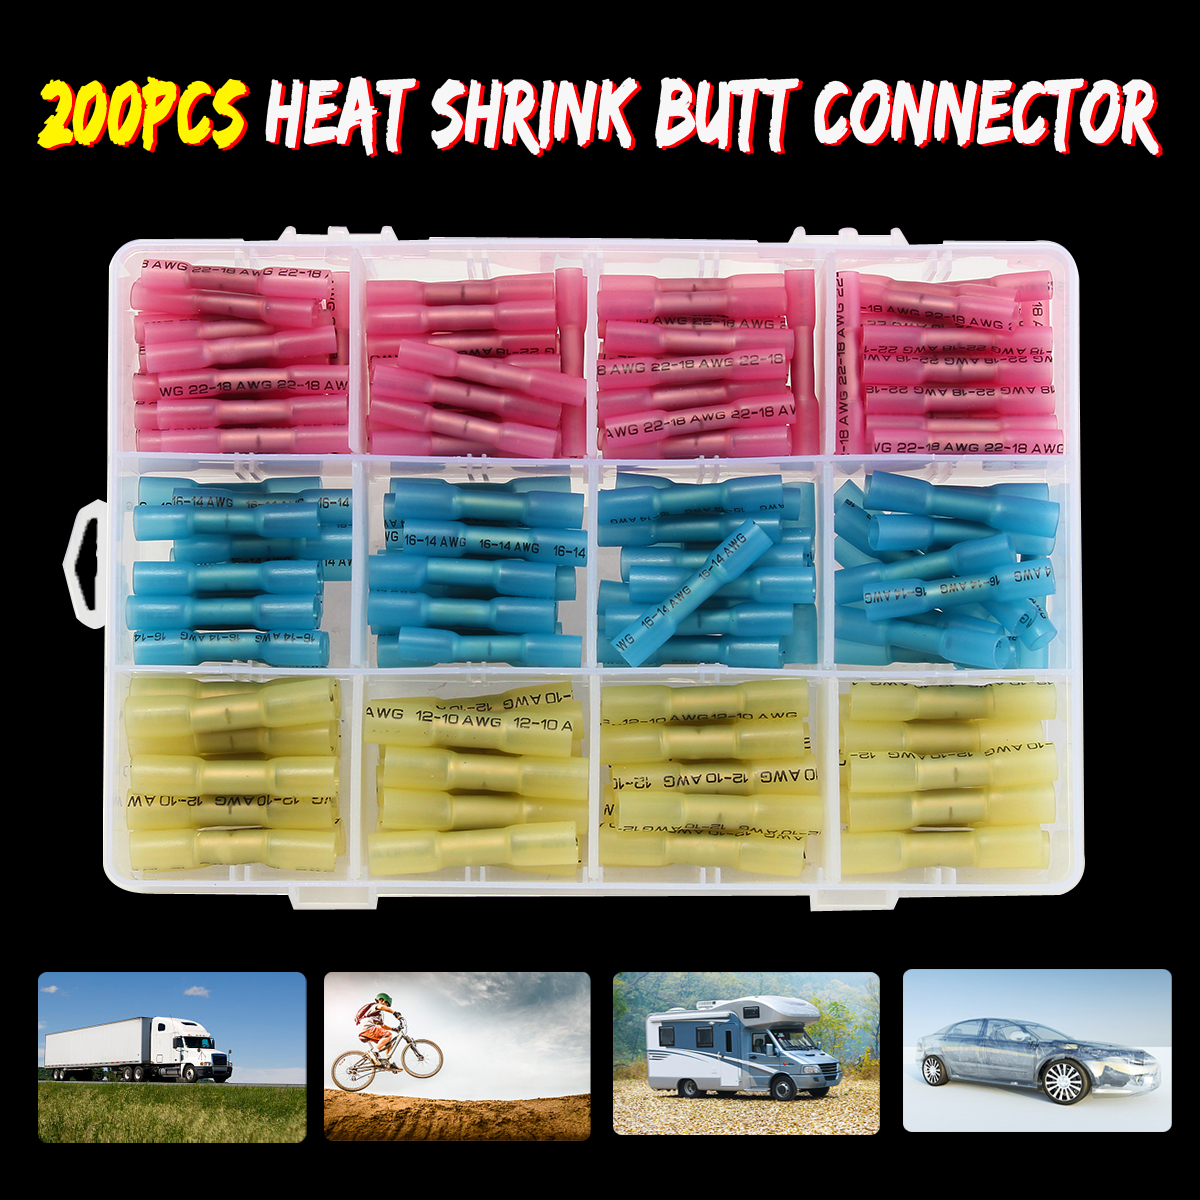 SWILET 200pcs Insulated Electrical Wire Terminals Heat Shrink Tubing Butt Connectors Kit 3 Type 10-22 AWG